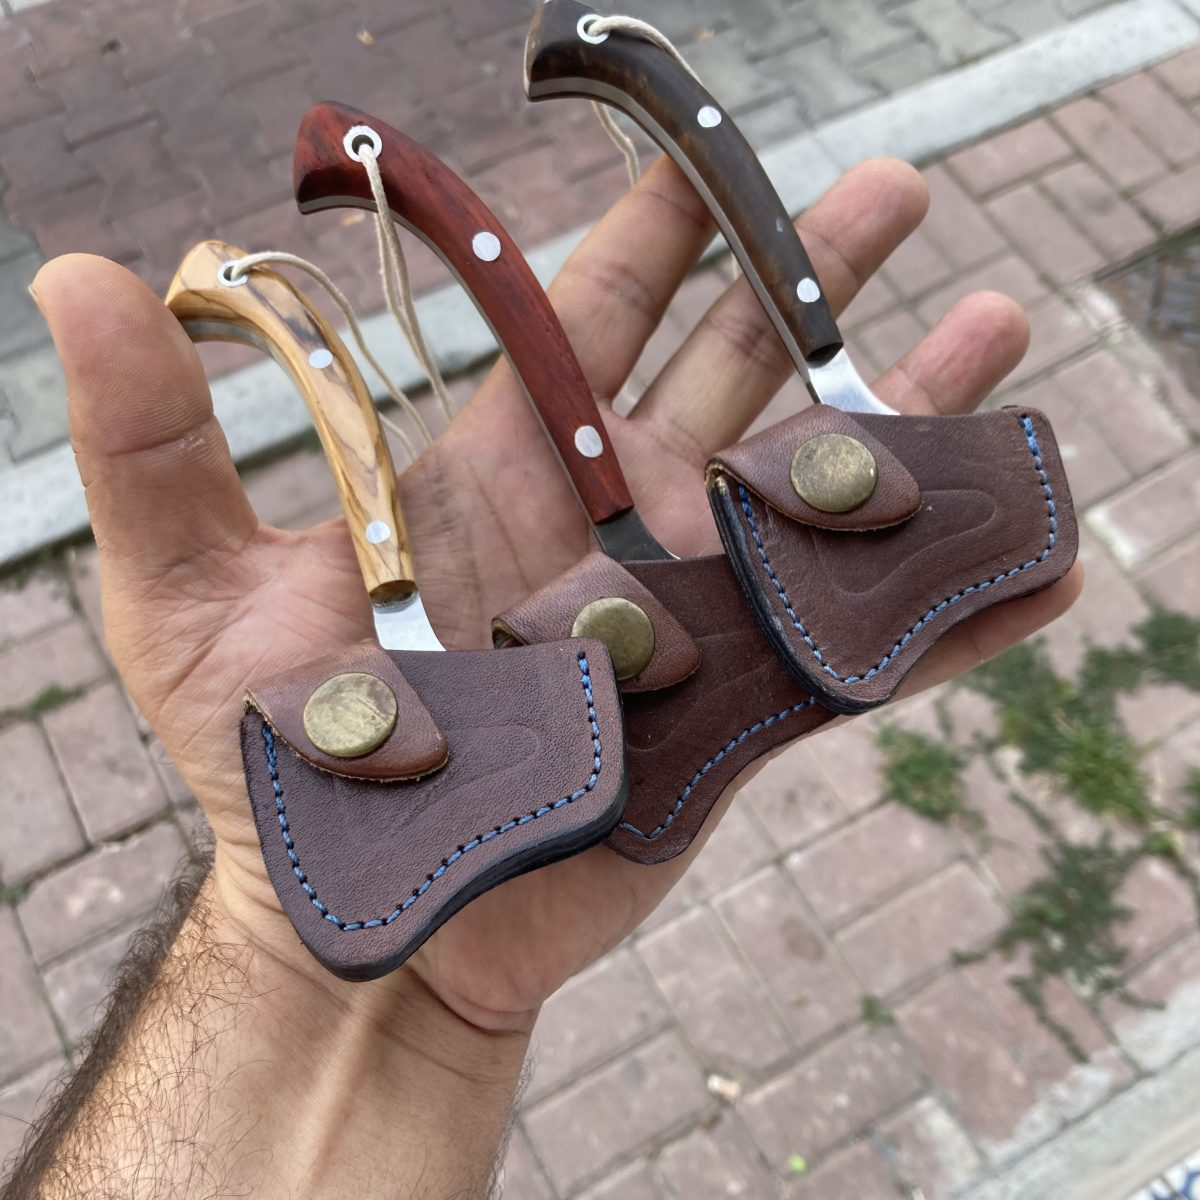 Buy Handcrafted Necklace Camping Axe 2 scaled Handcrafted Necklace Camping Axe